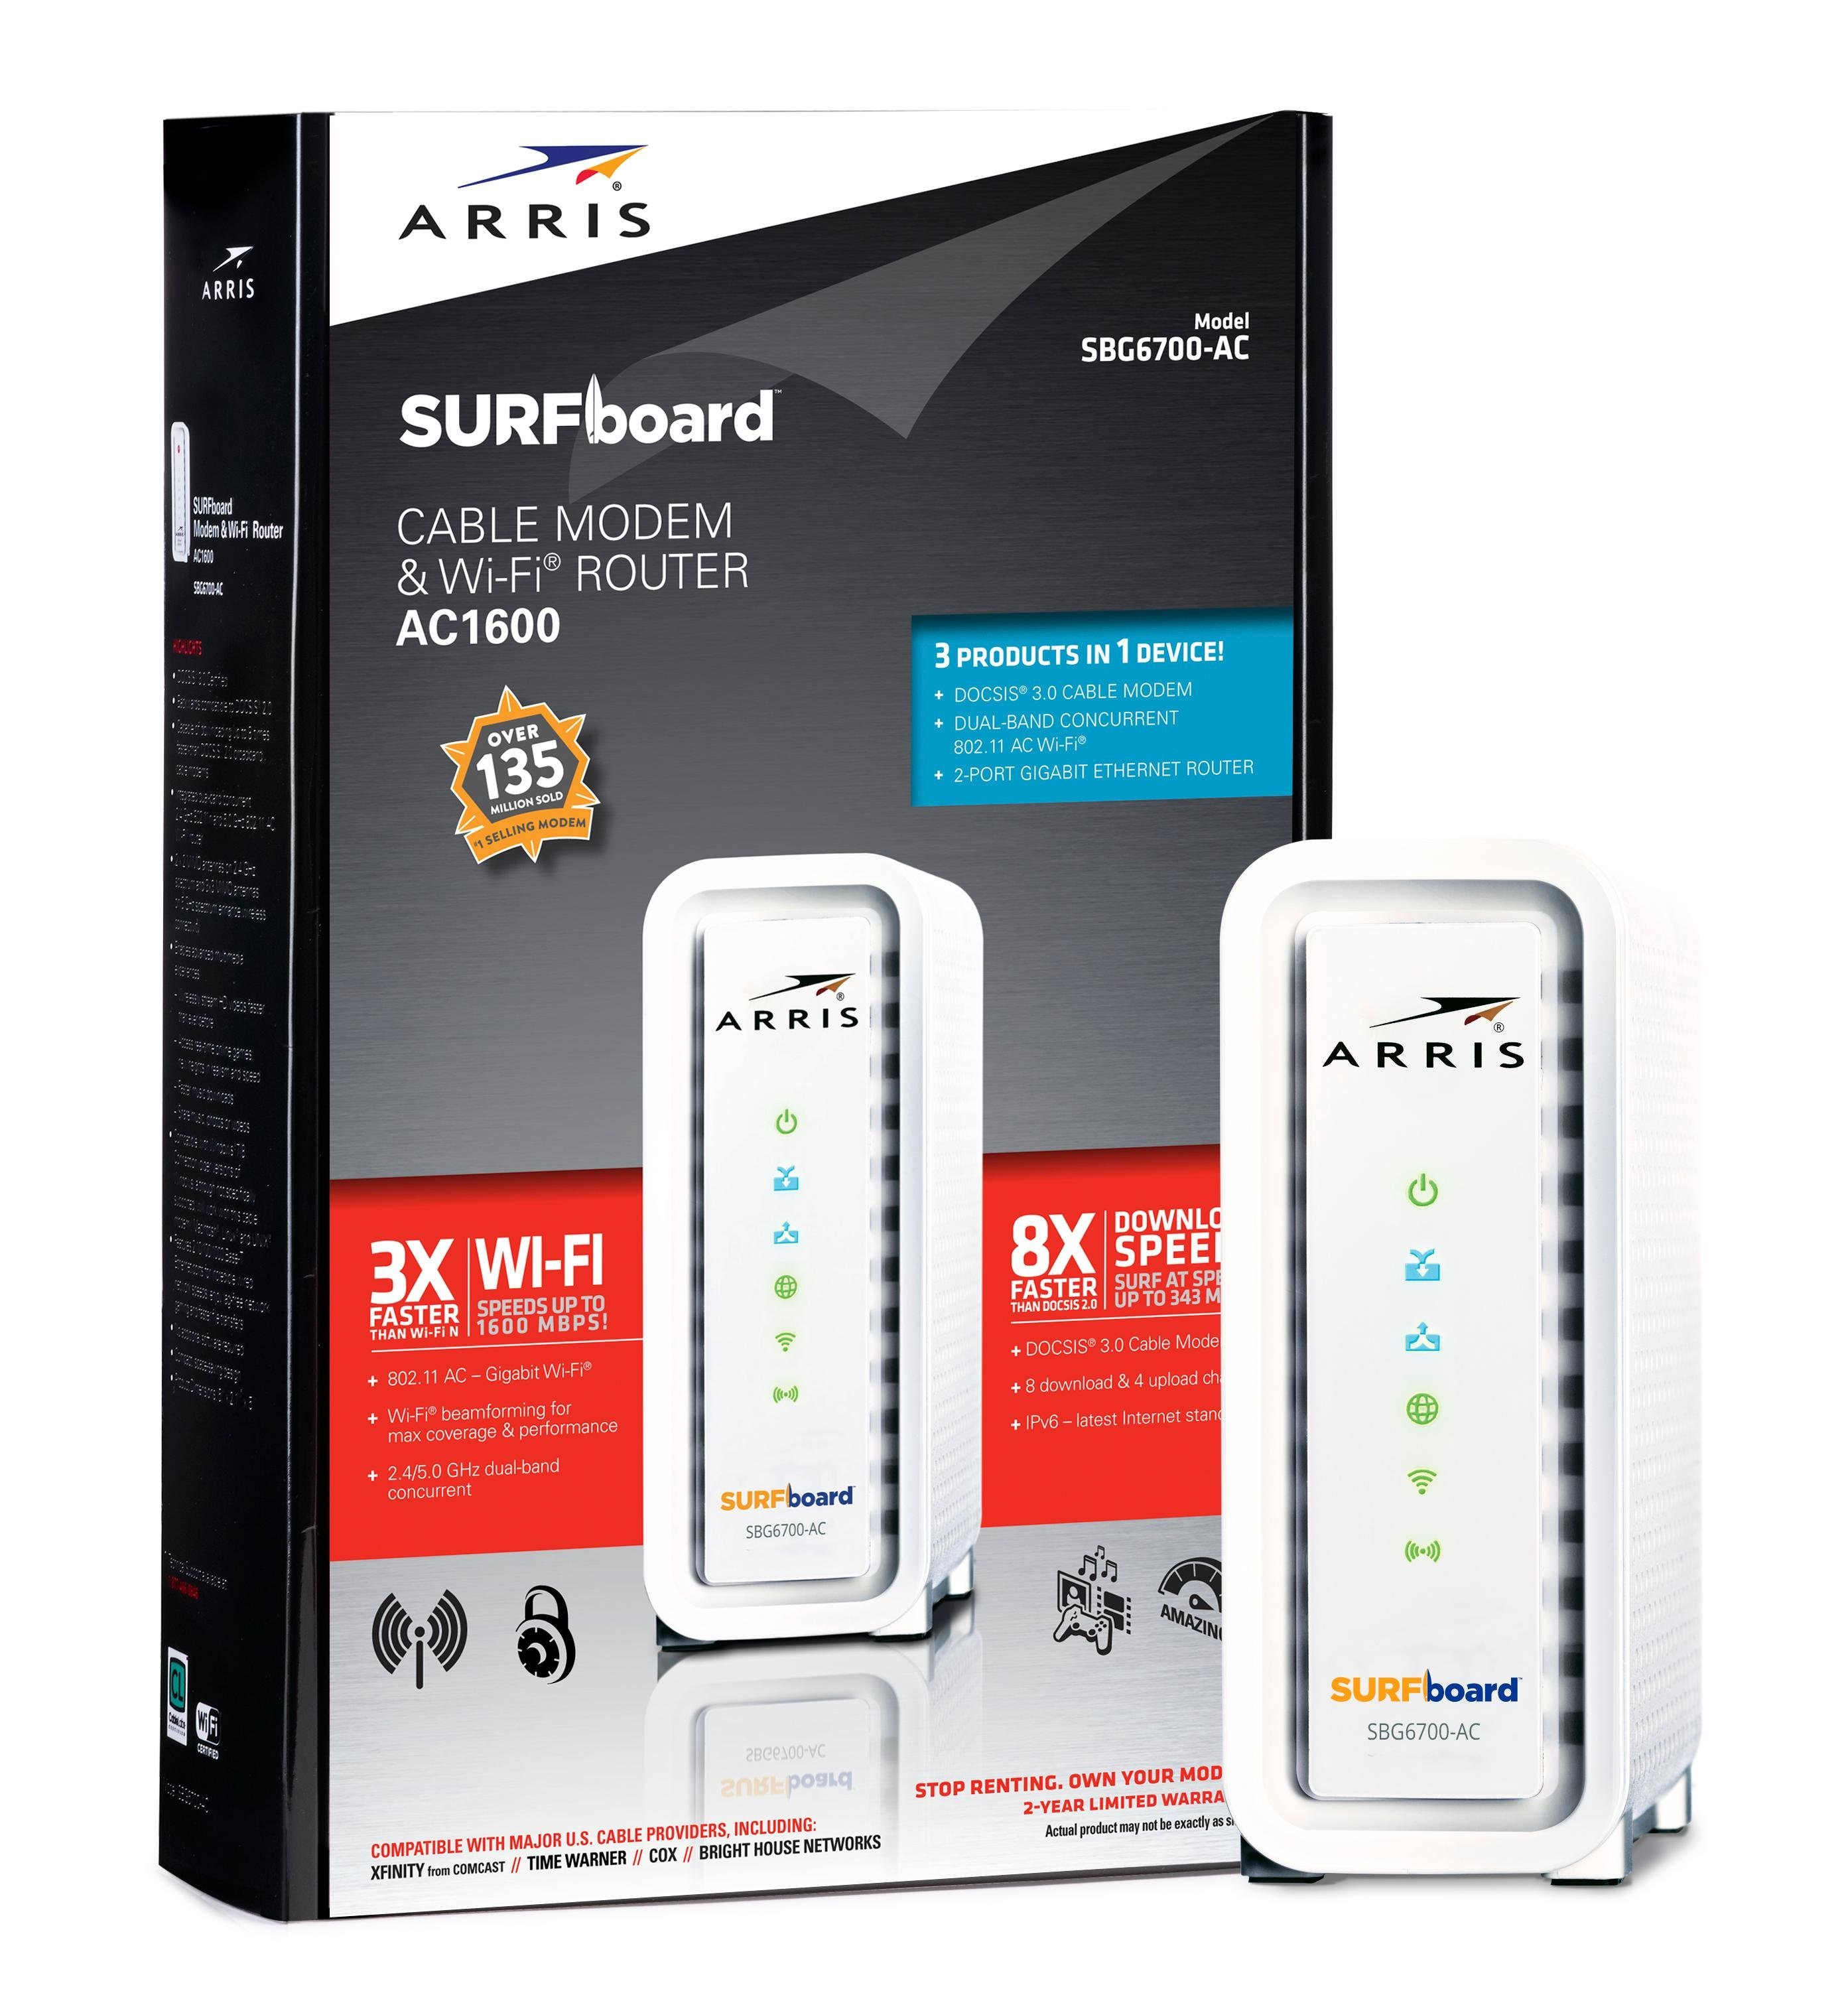 SURFboard AC1900 Dual-Band Router with 16 x 4 DOCSIS 3.0 Cable Modem ... ARRIS